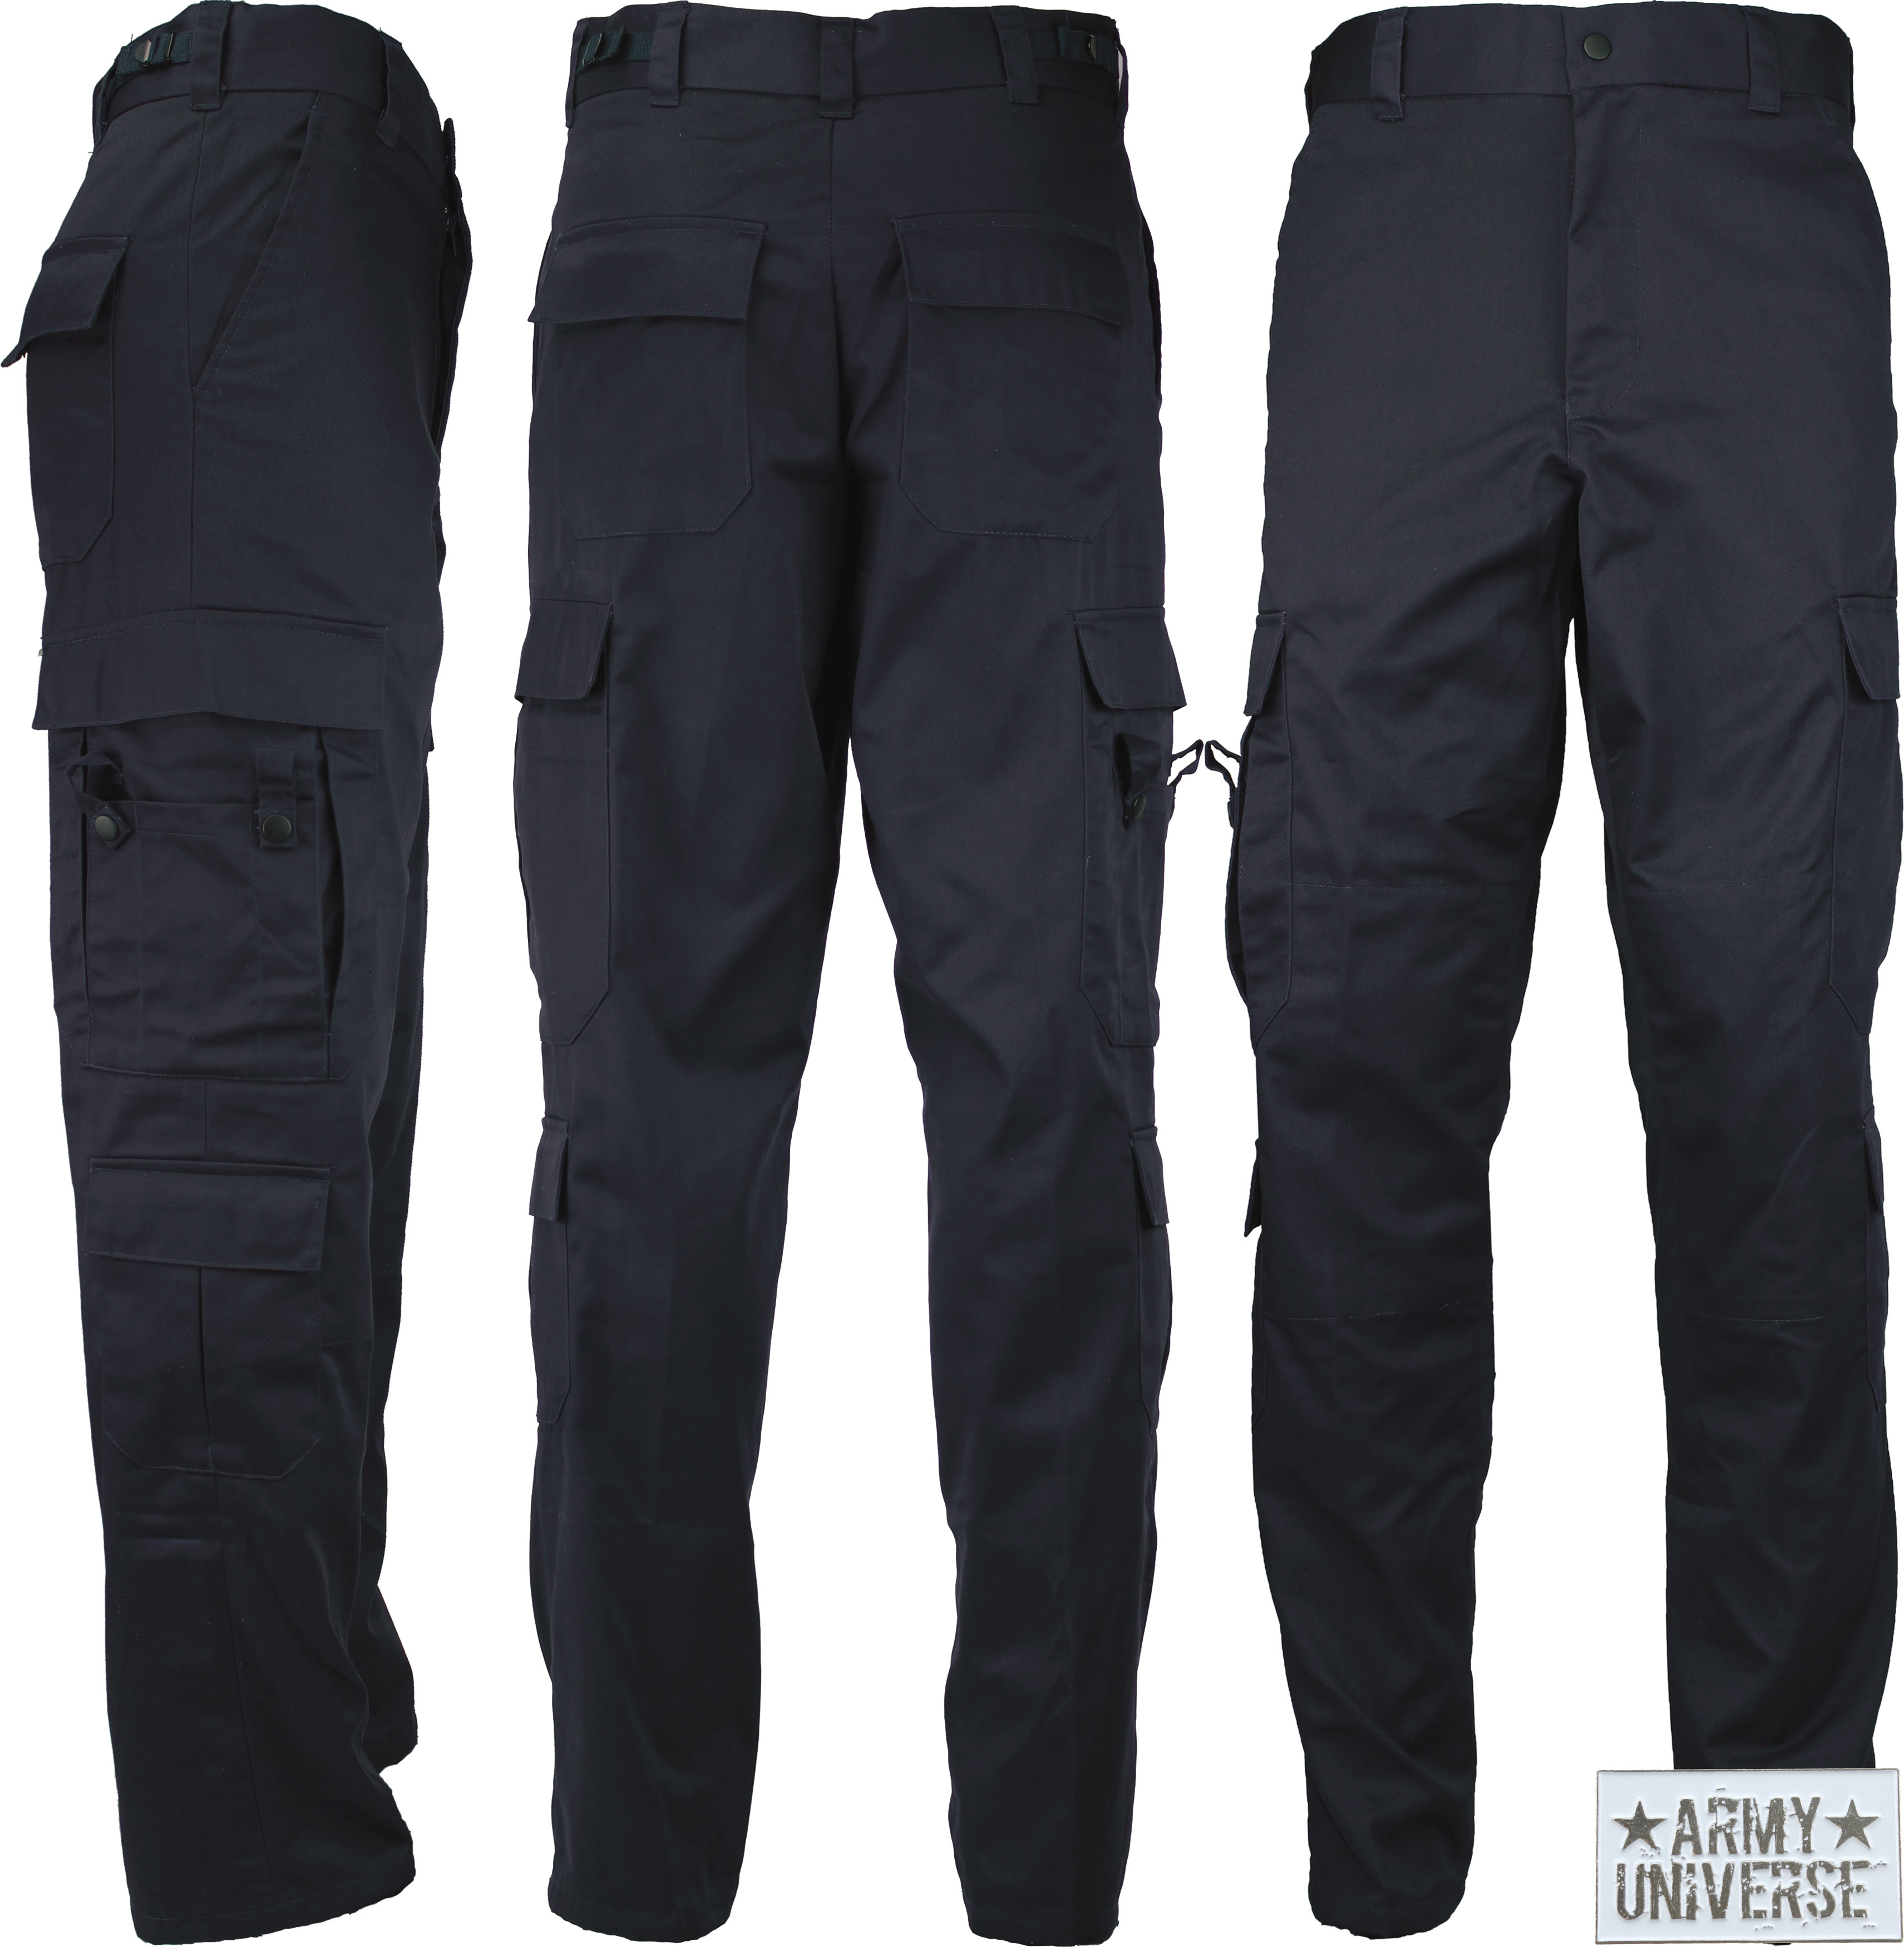 ... Midnight Dark Navy Deluxe EMT 9 Pocket First Responder Uniform Pants w   ArmyUniverse Pin  Navy Blue ... a0dbe54a7345